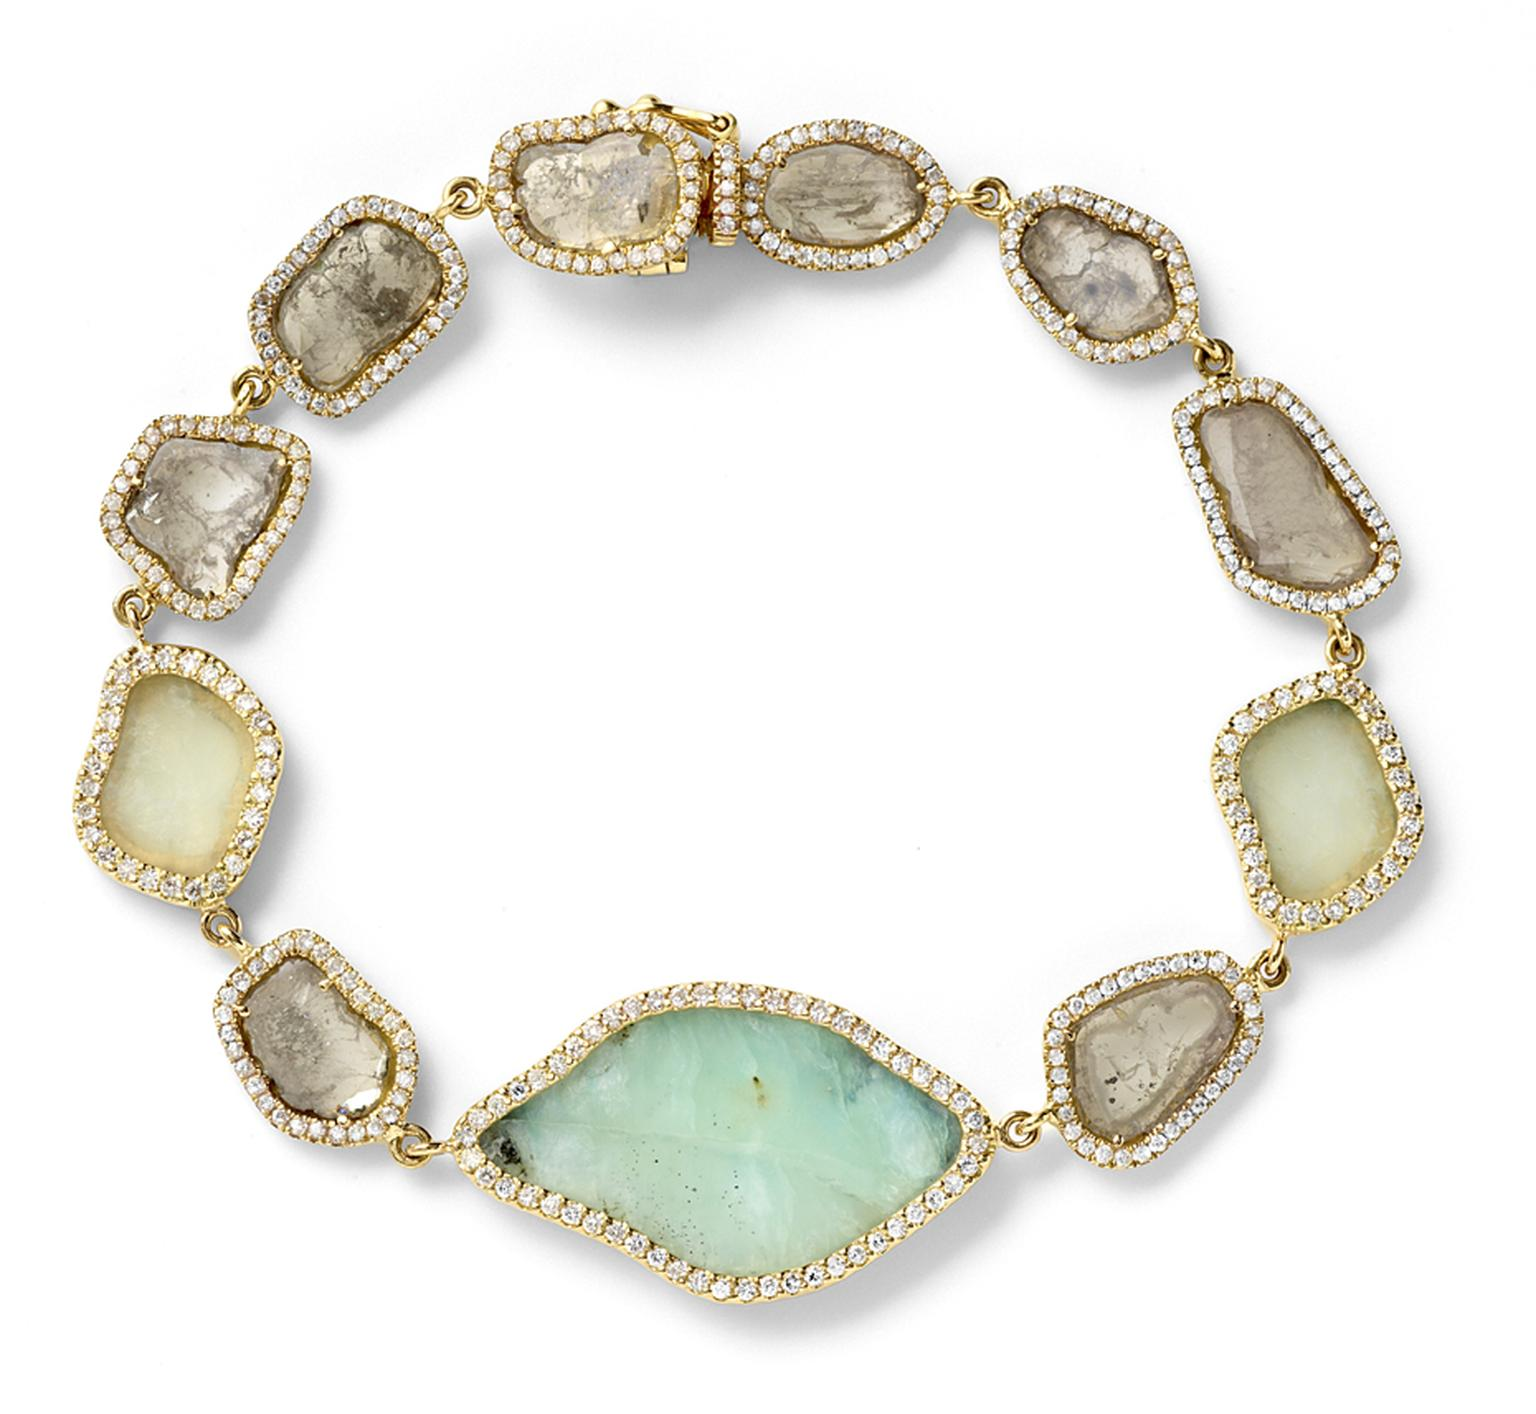 Monique Péan bracelet featuring cream fossilized woolly mammoth ivory, opal and serpentine surrounded by diamonds set in gold.